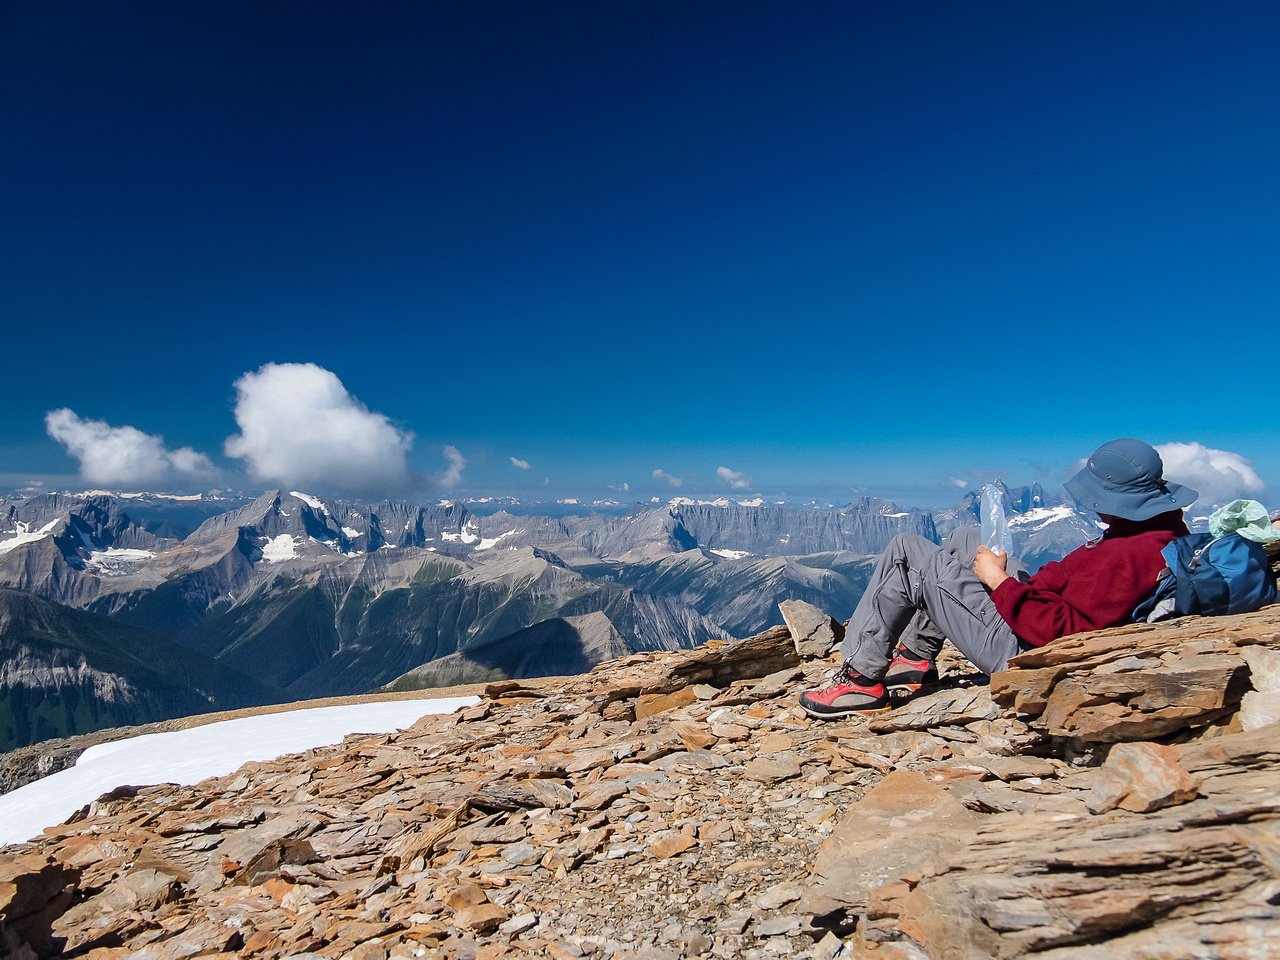 Relaxing at the summit.